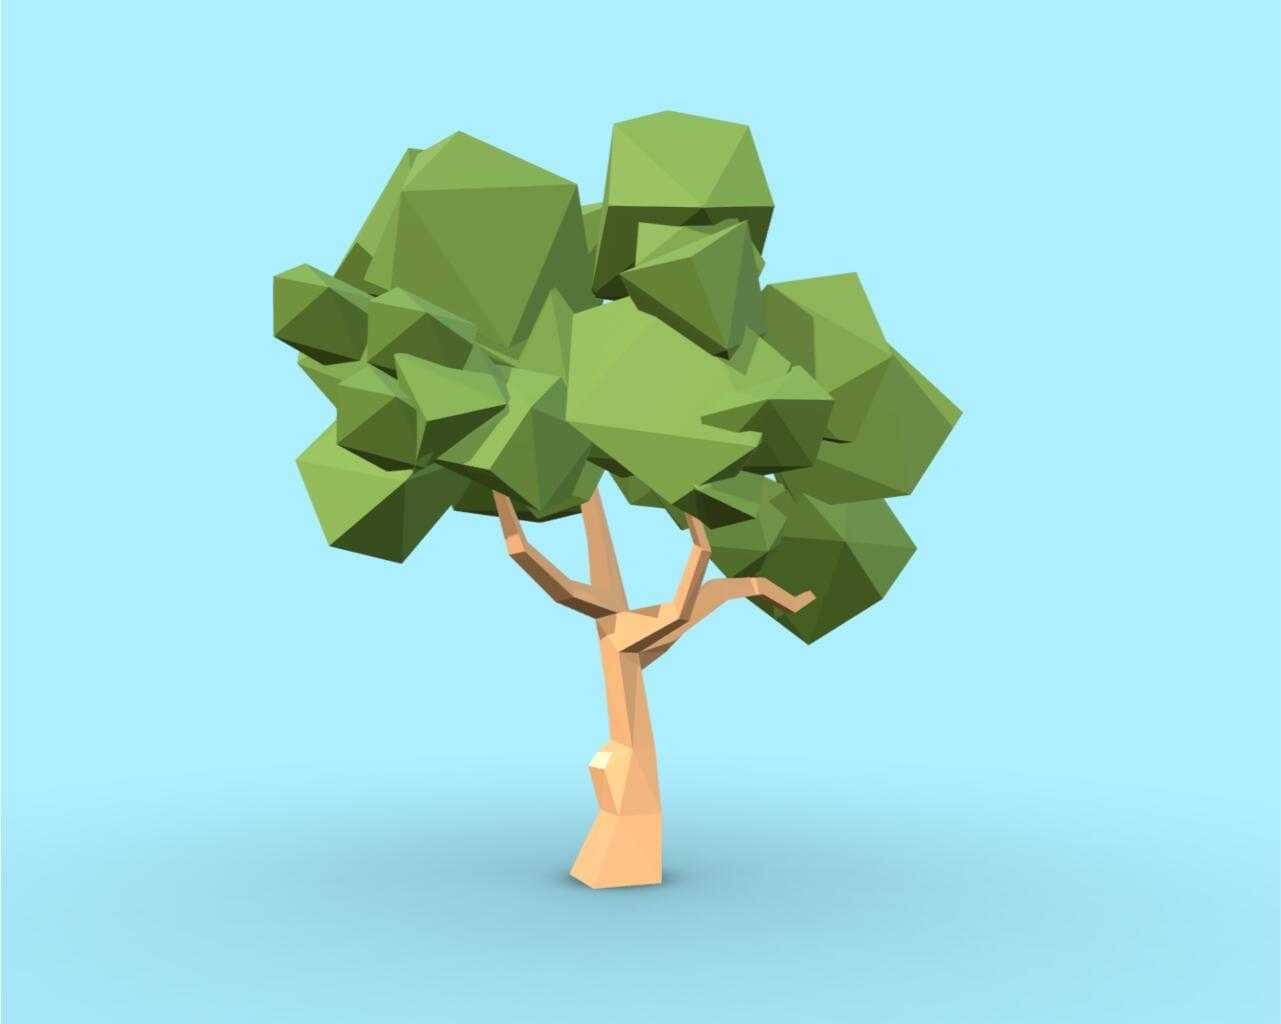 3D Modeling Lowpoly Assets for Mobile Games by Trashbot - 118309